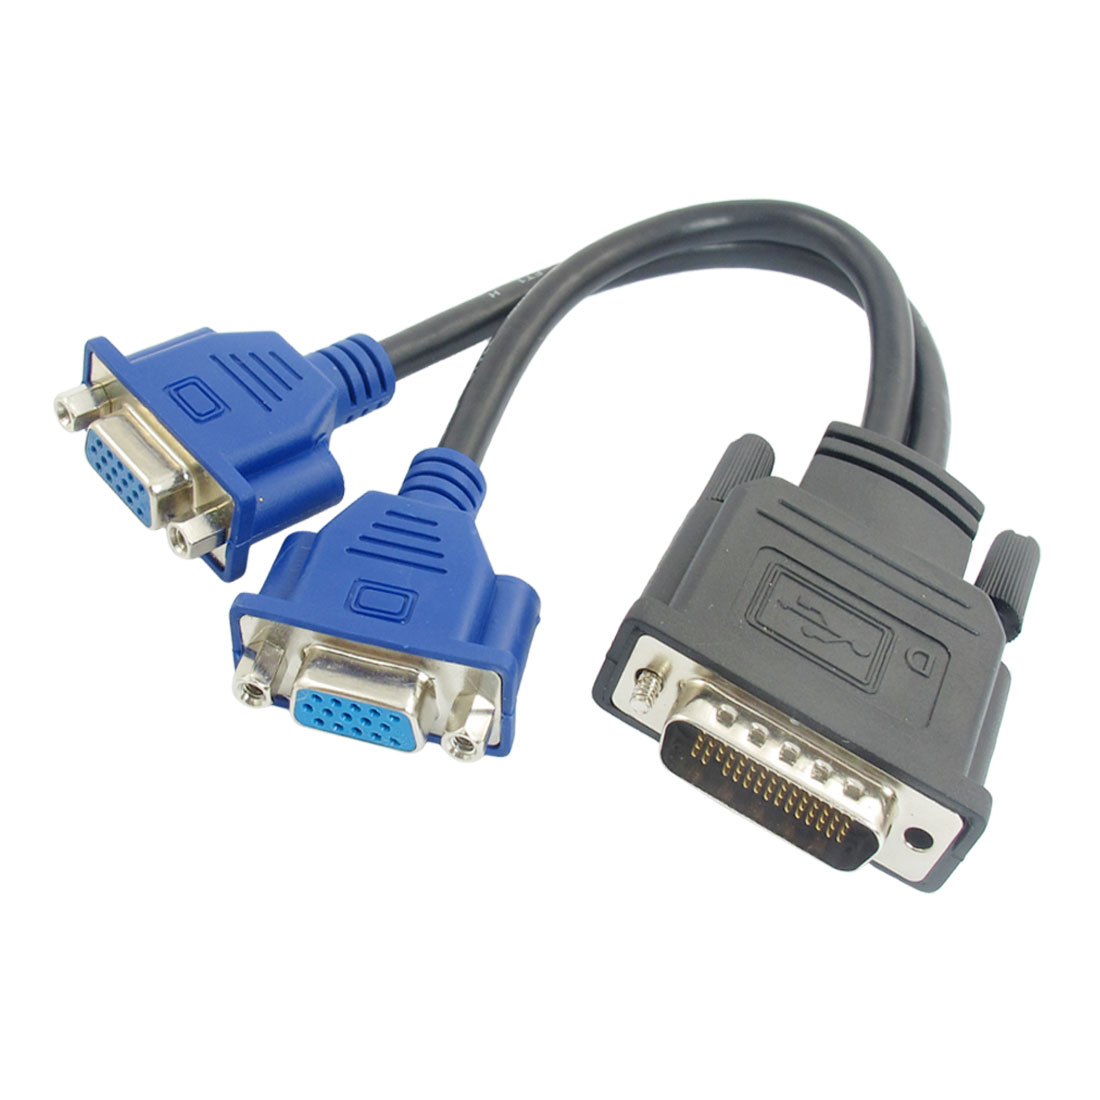 DMS-59 Pin to 2 Dual VGA 15 Pin Female Splitter Adapter Cable